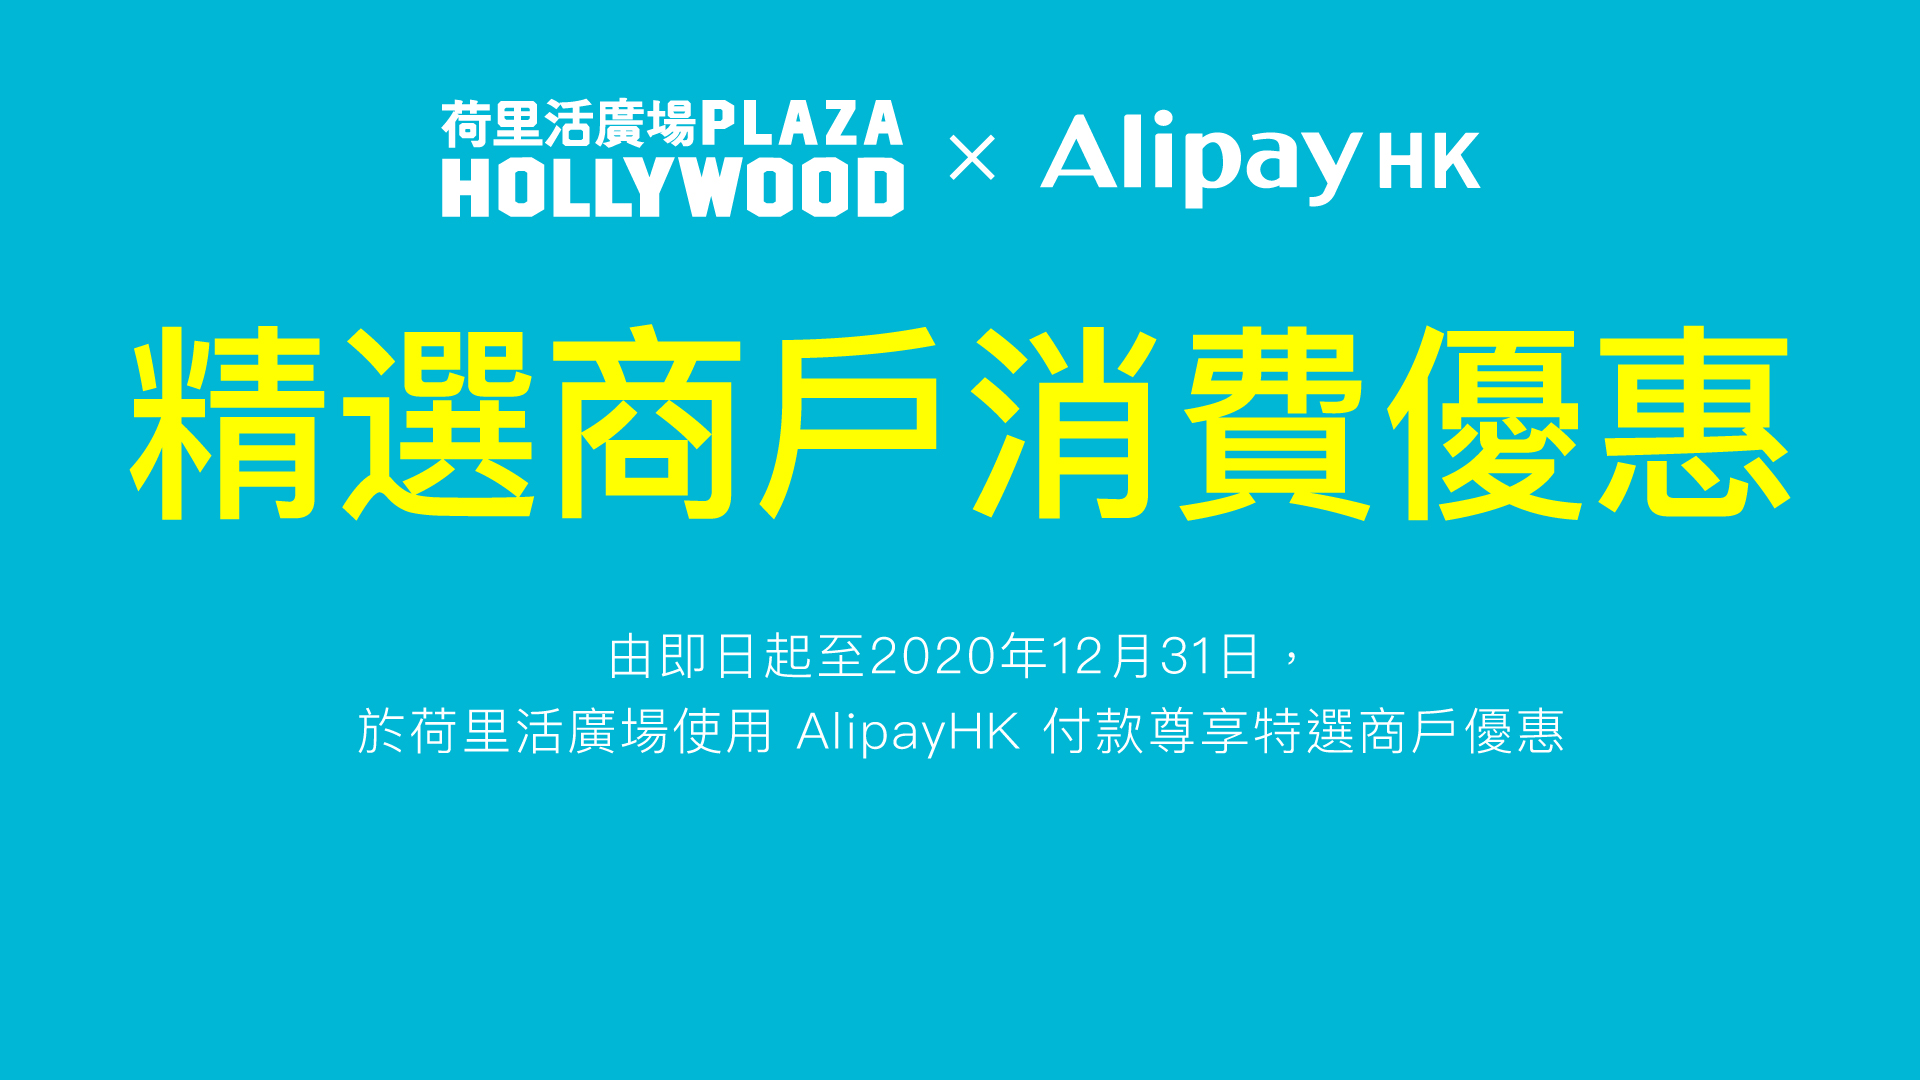 AlipayHK Shopping Privileges Promotion